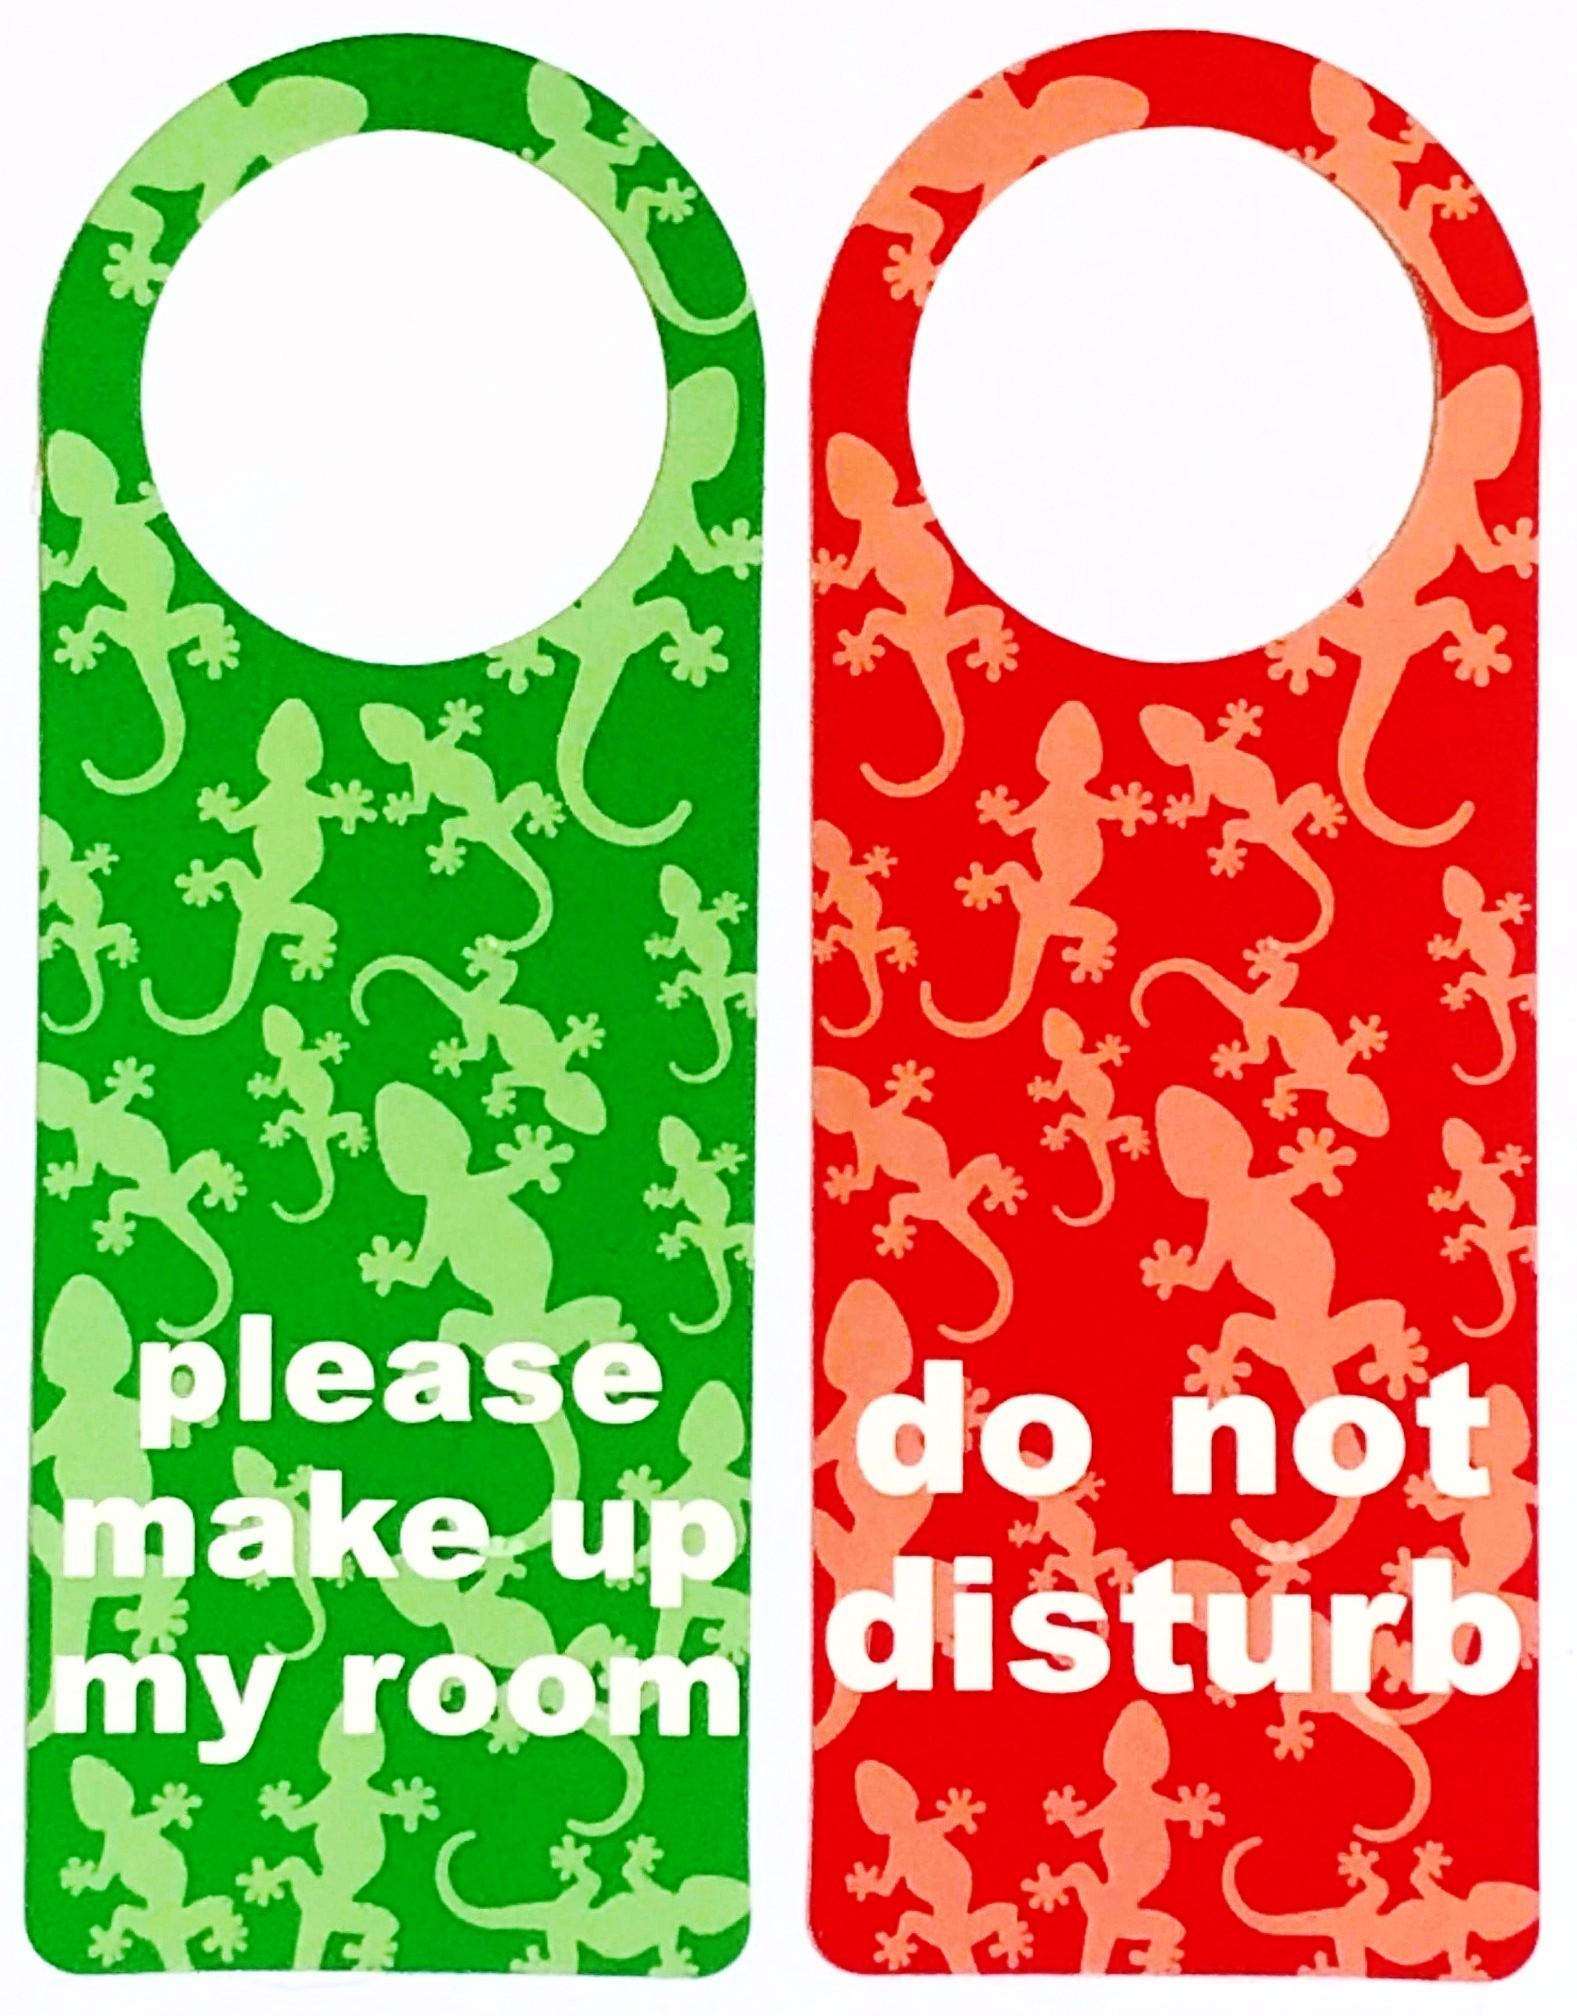 Do Not Disturb/Make Up My Room (10 pack)